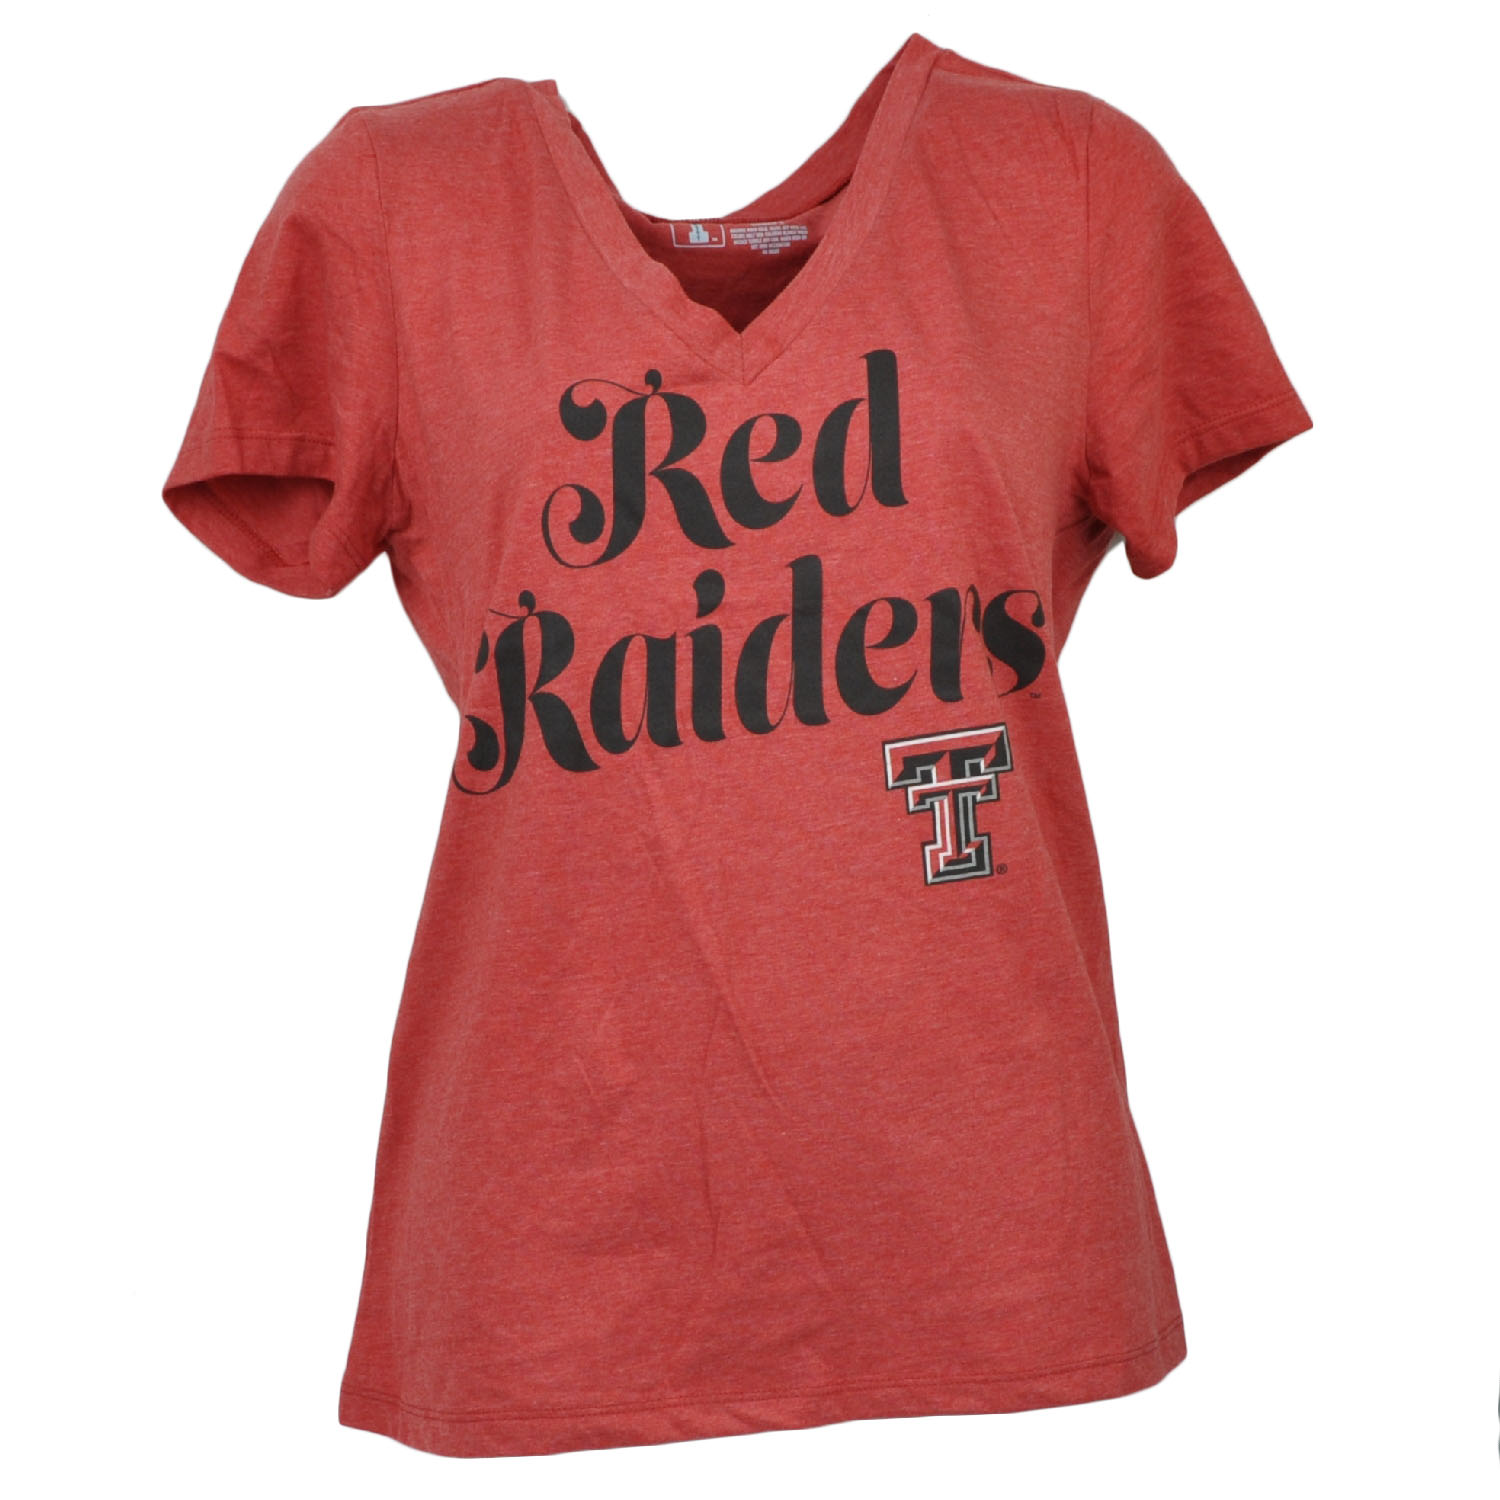 NCAA Texas Tech Red Raiders V Neck Womens Short Sleeve Tshirt Tee Ladies XLarge